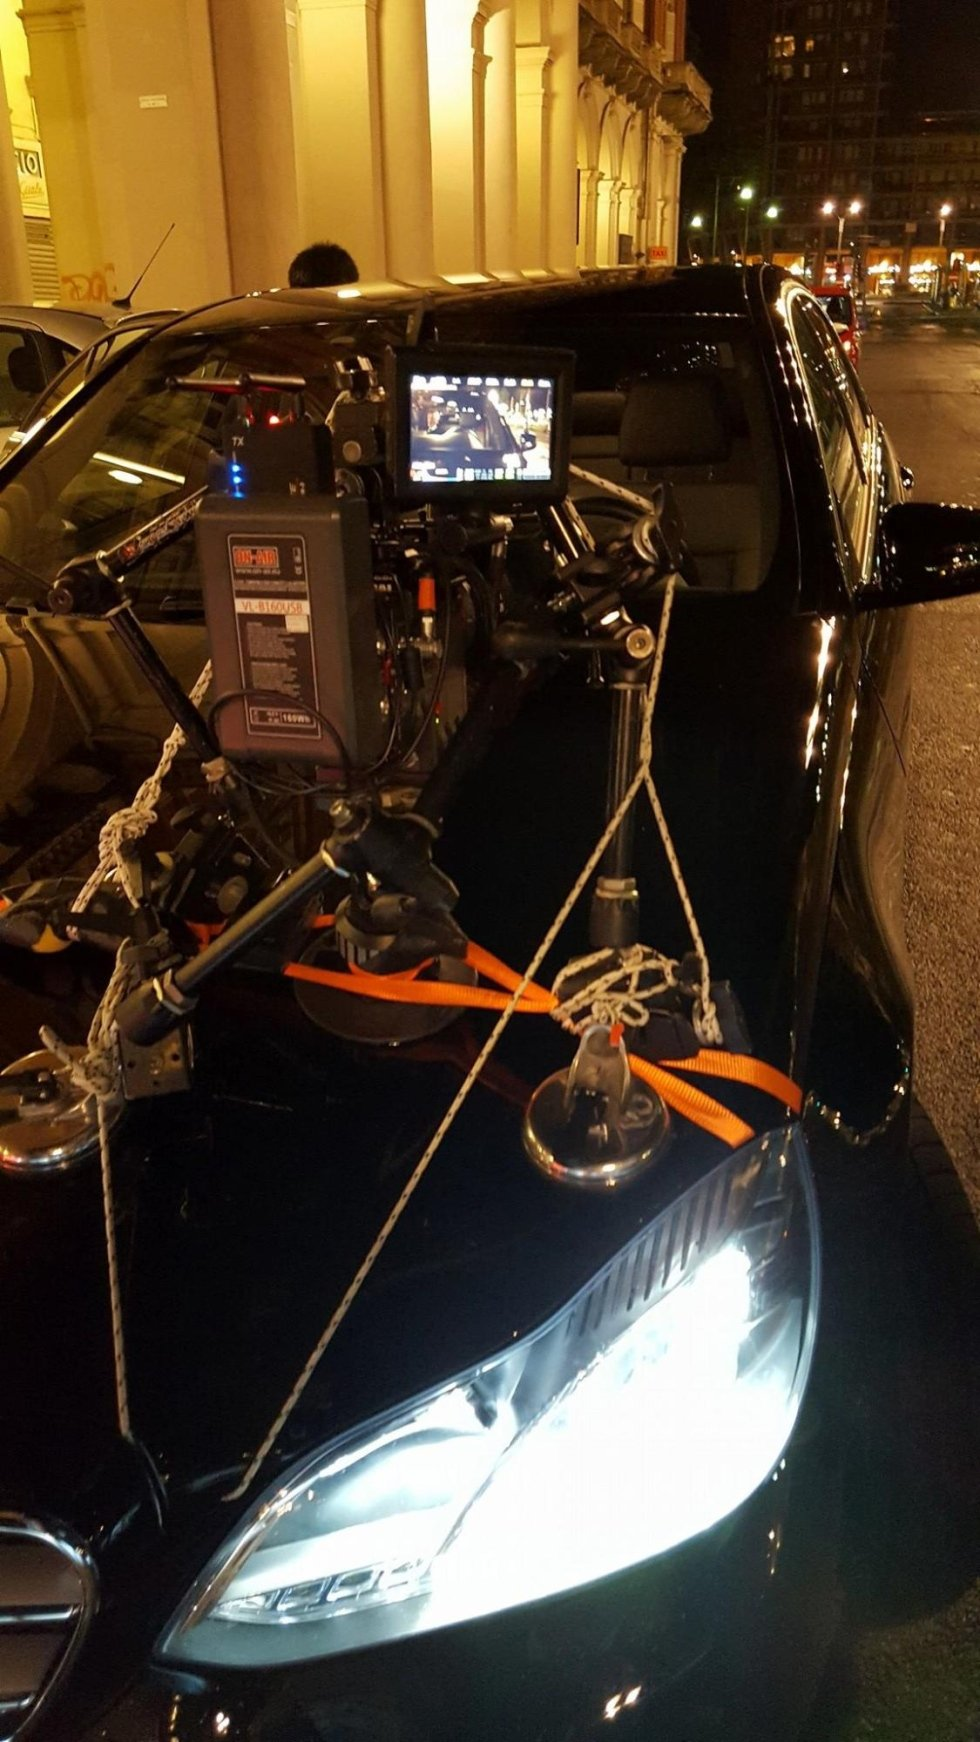 Car rental for film and TV productions